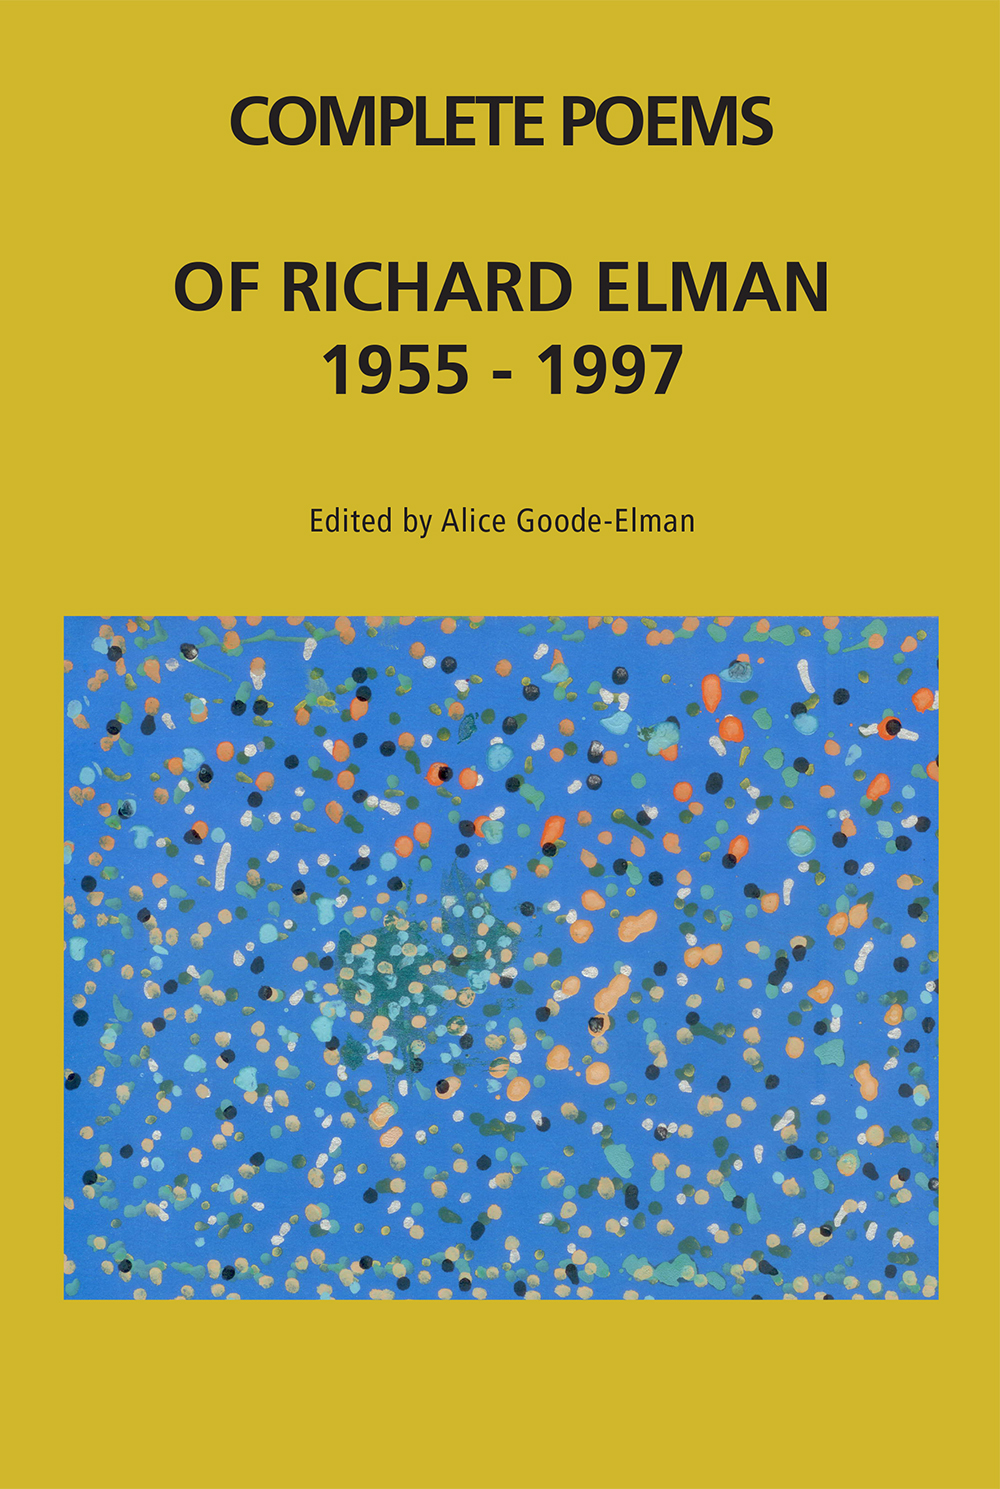 Complete Poems of Richard Elman